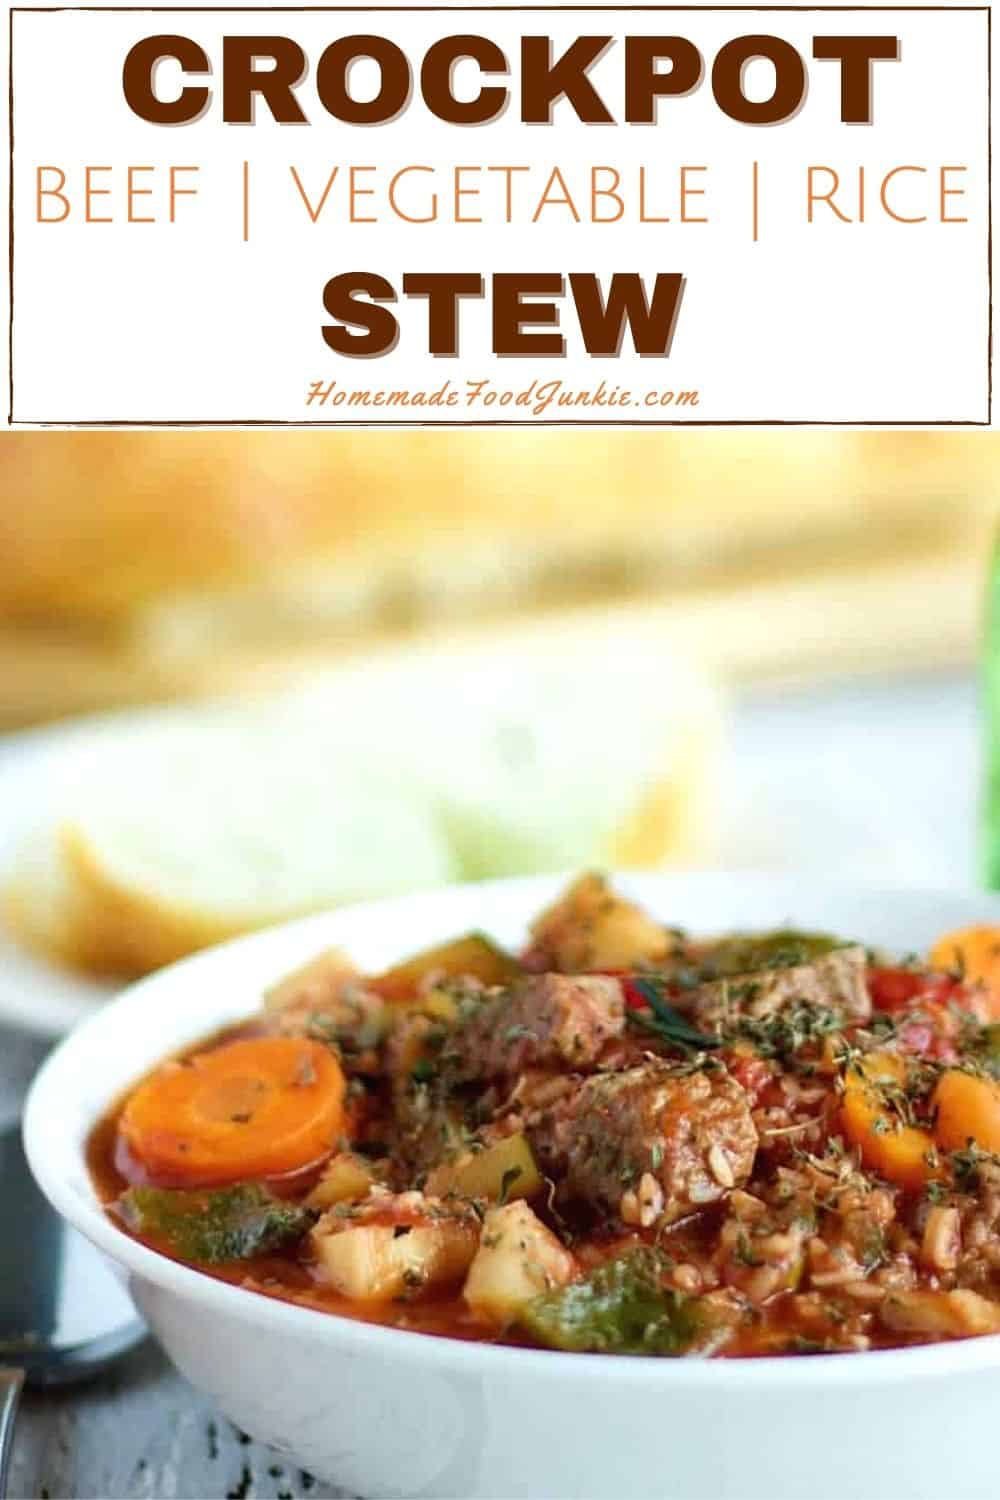 Crockpot beef vegetable rice stew-pin image